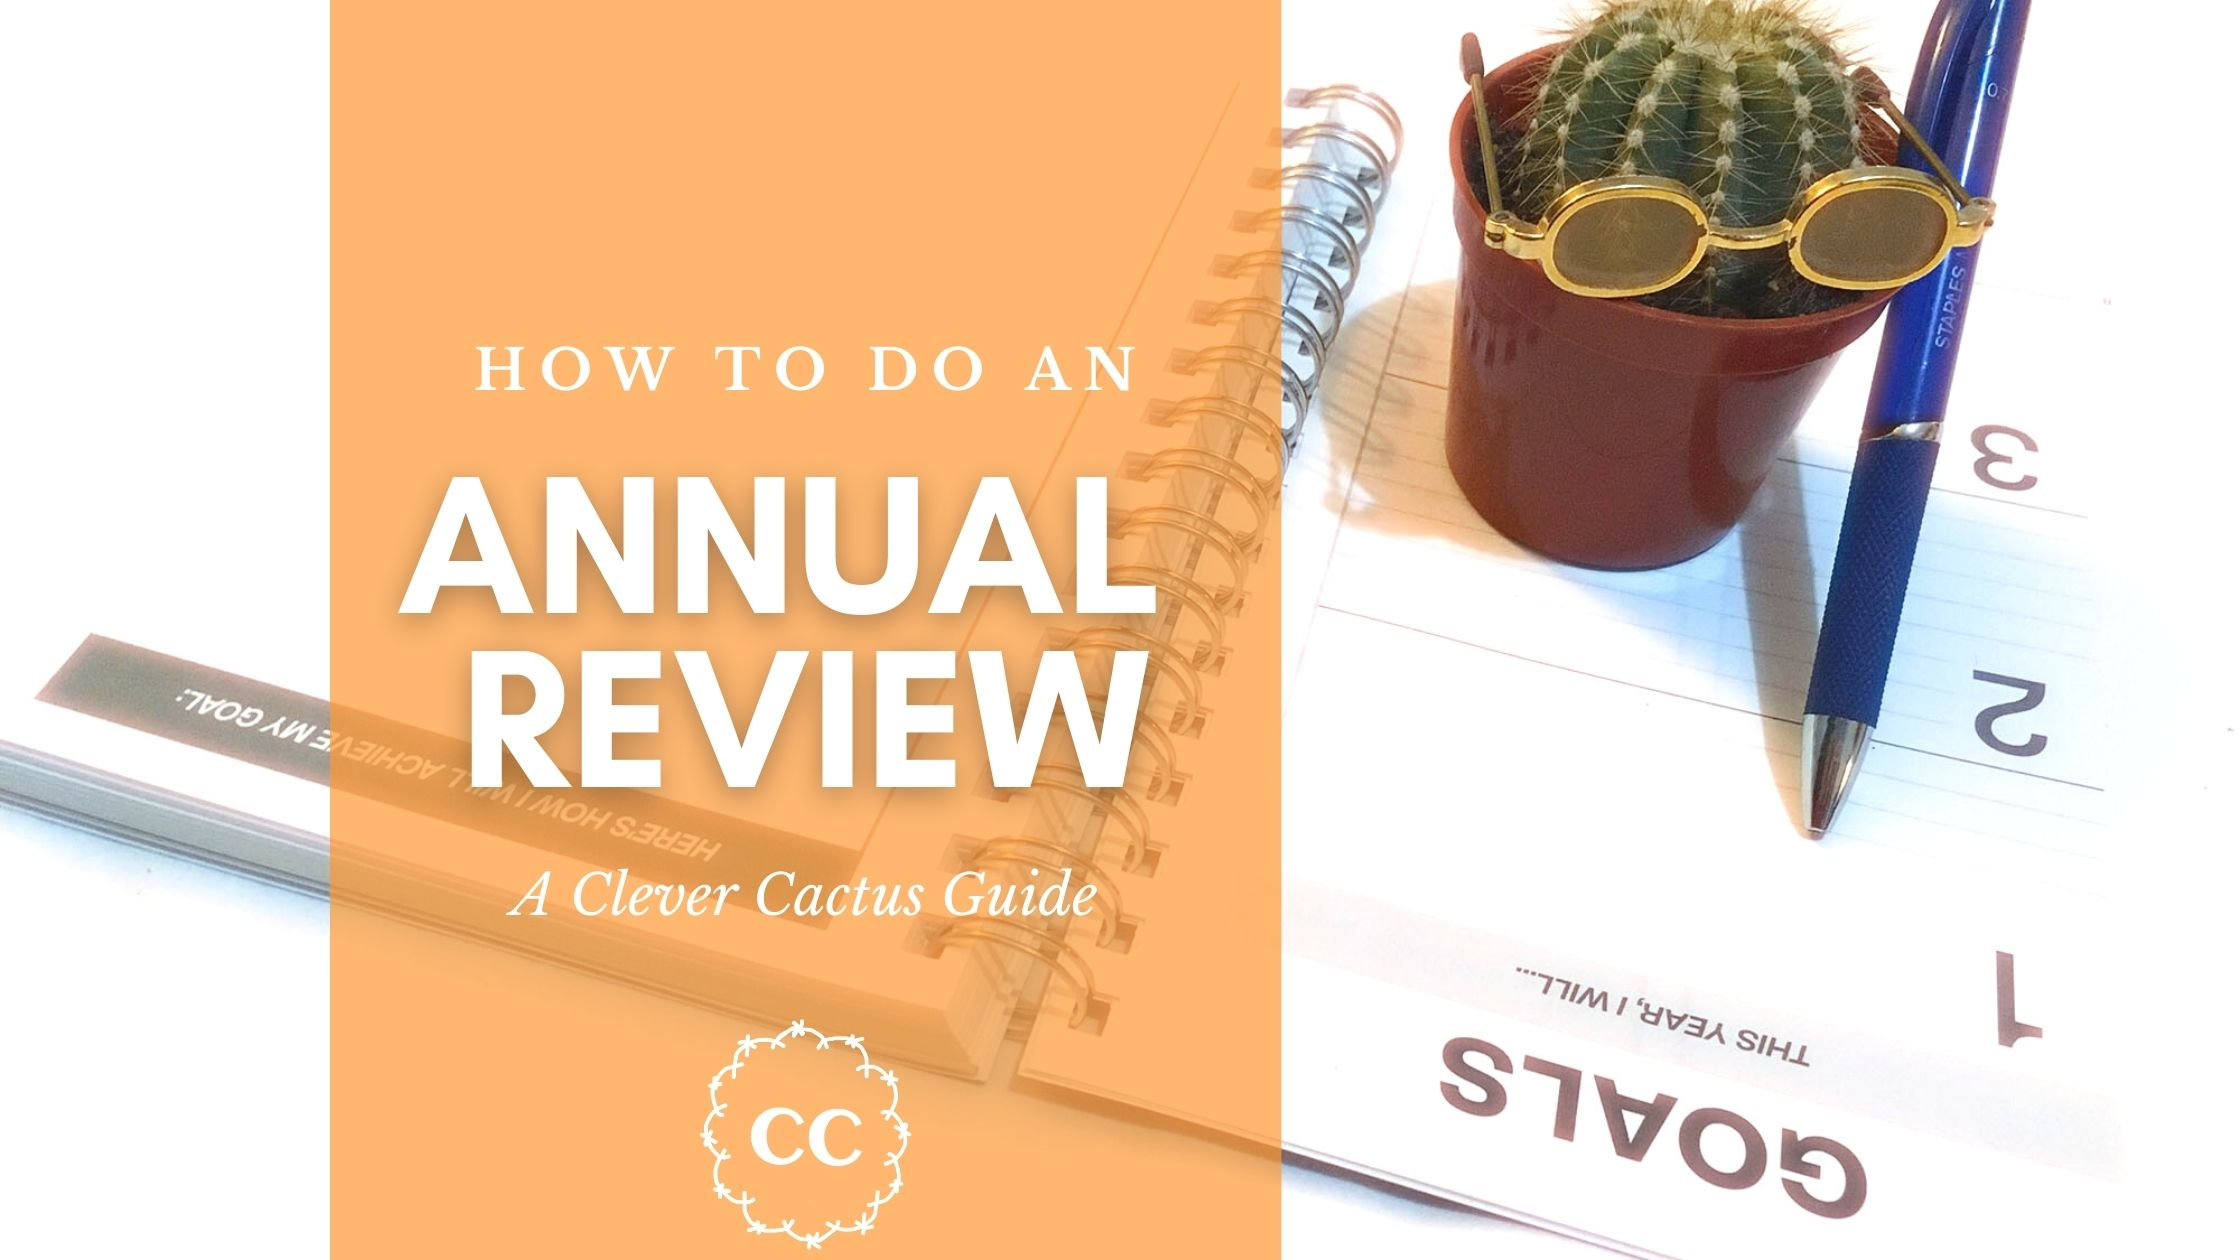 How to do an Annual Review